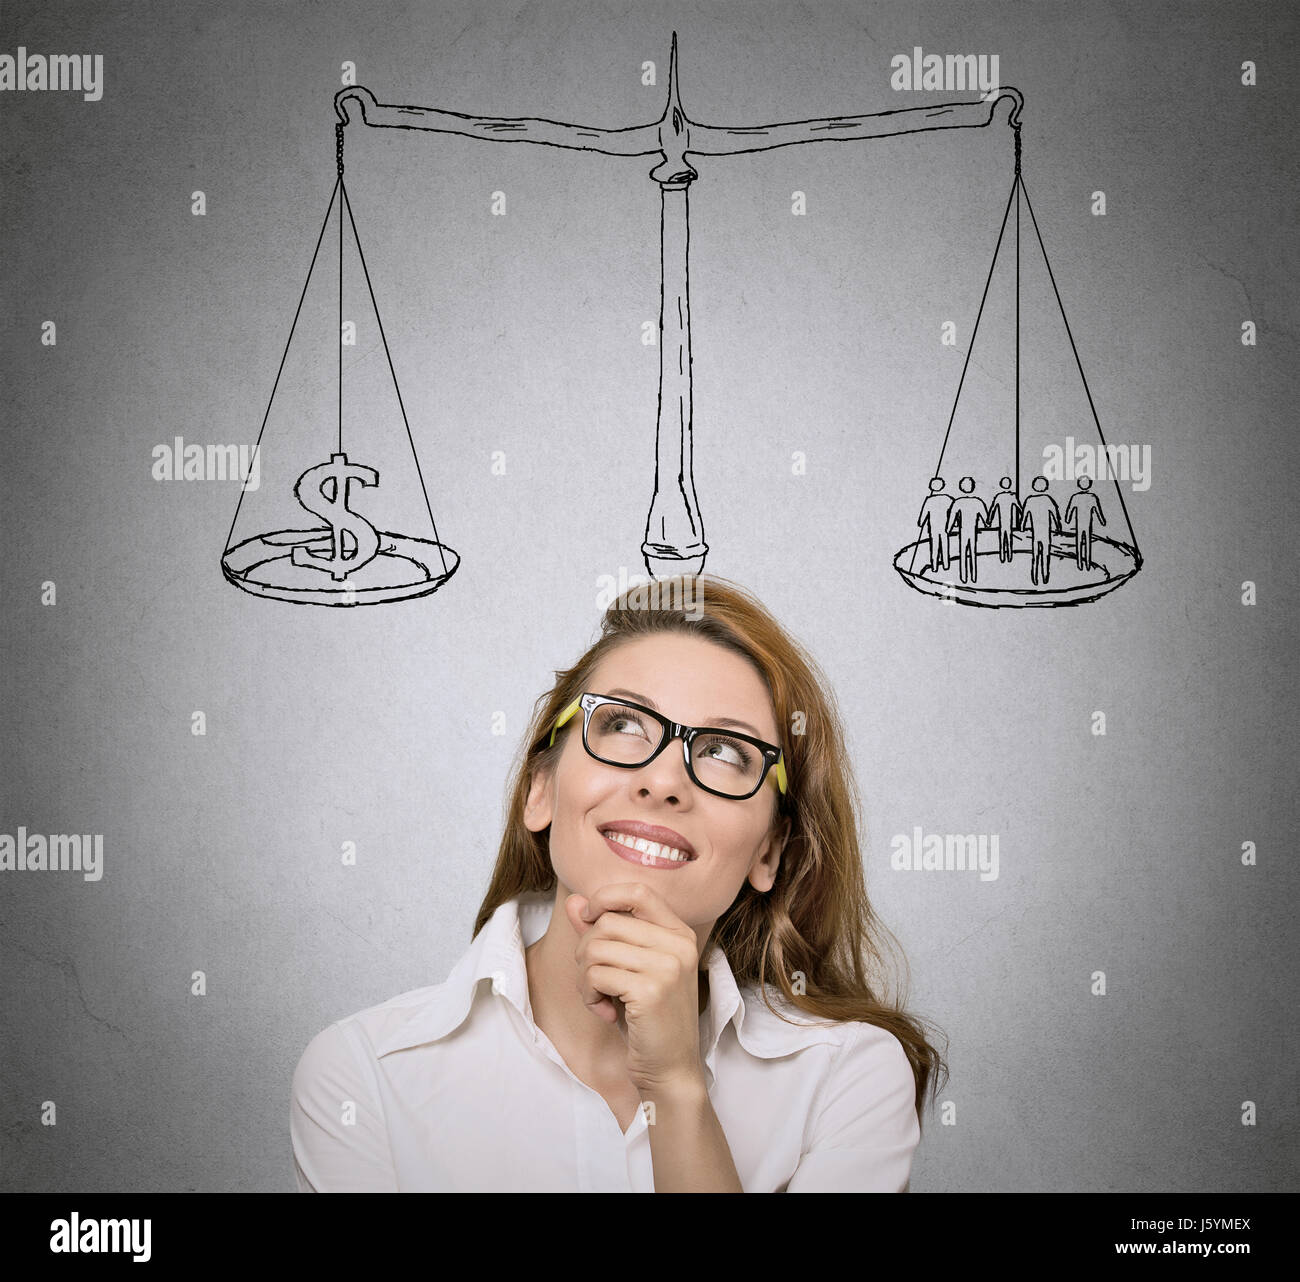 Balance. Life choices, priorities, opportunities, possibilities. Woman, student  thinking, looking for solution - Stock Image